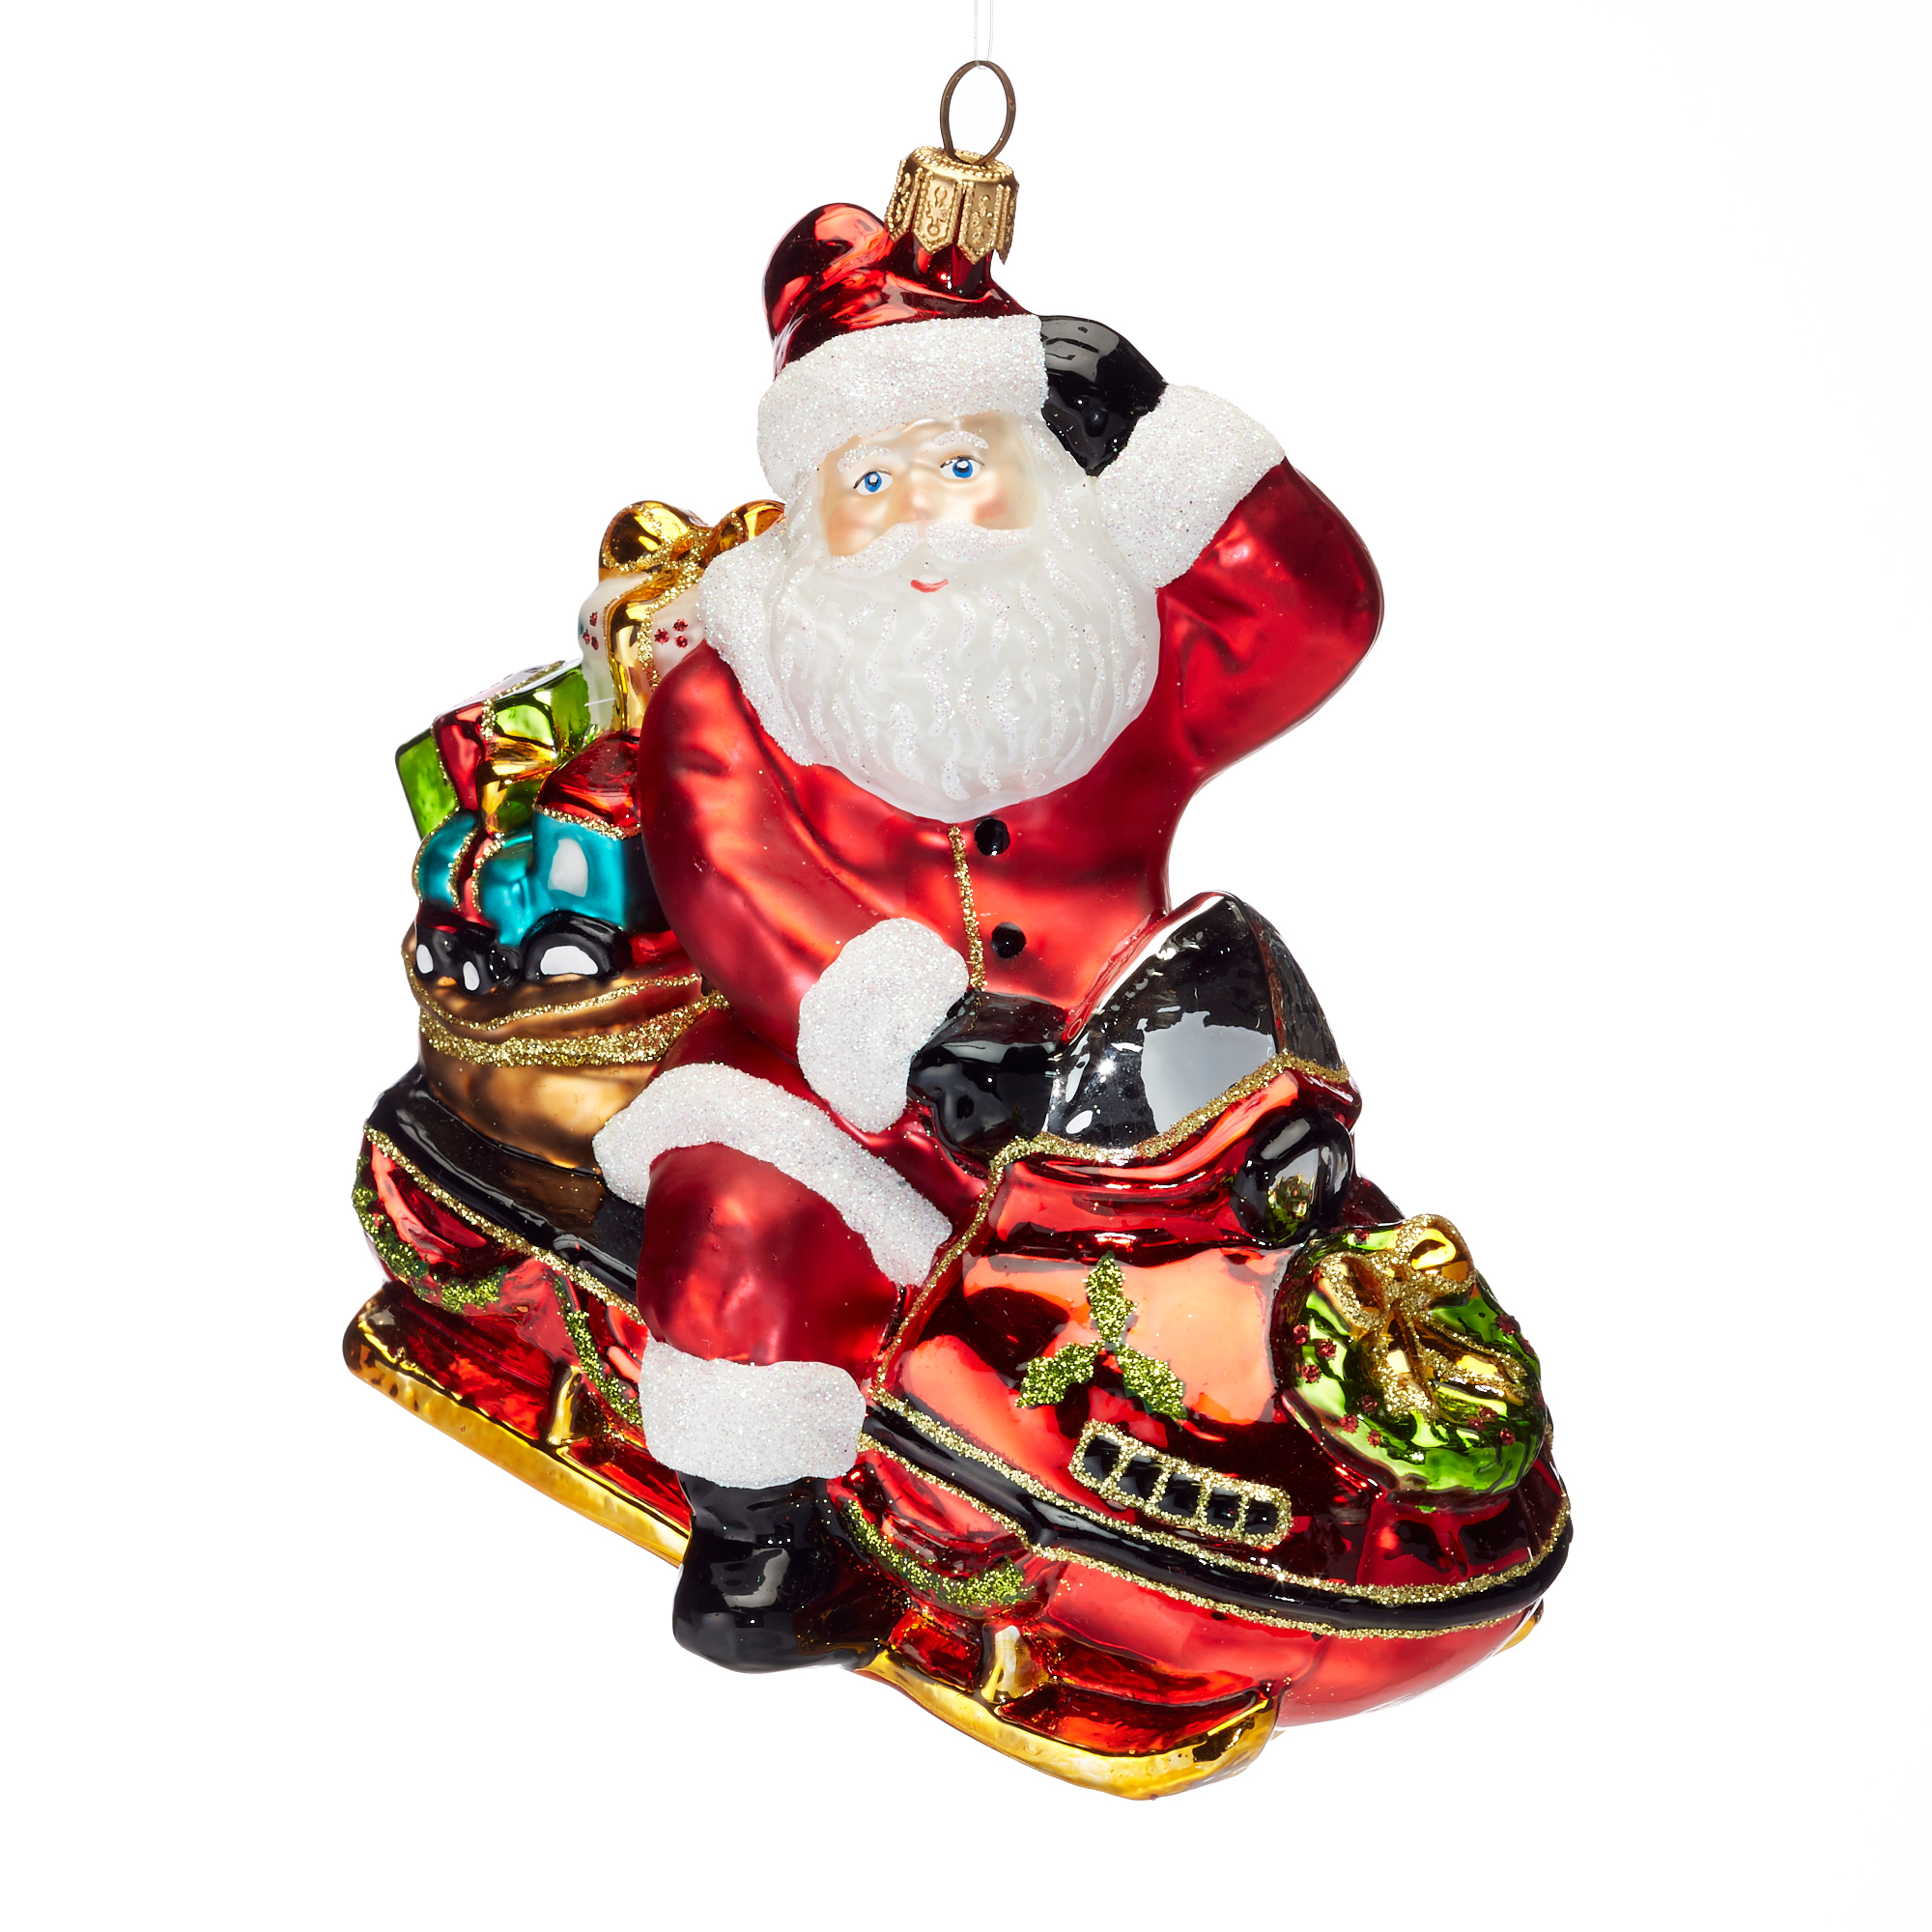 Festive Follies Snowmobile Ornament